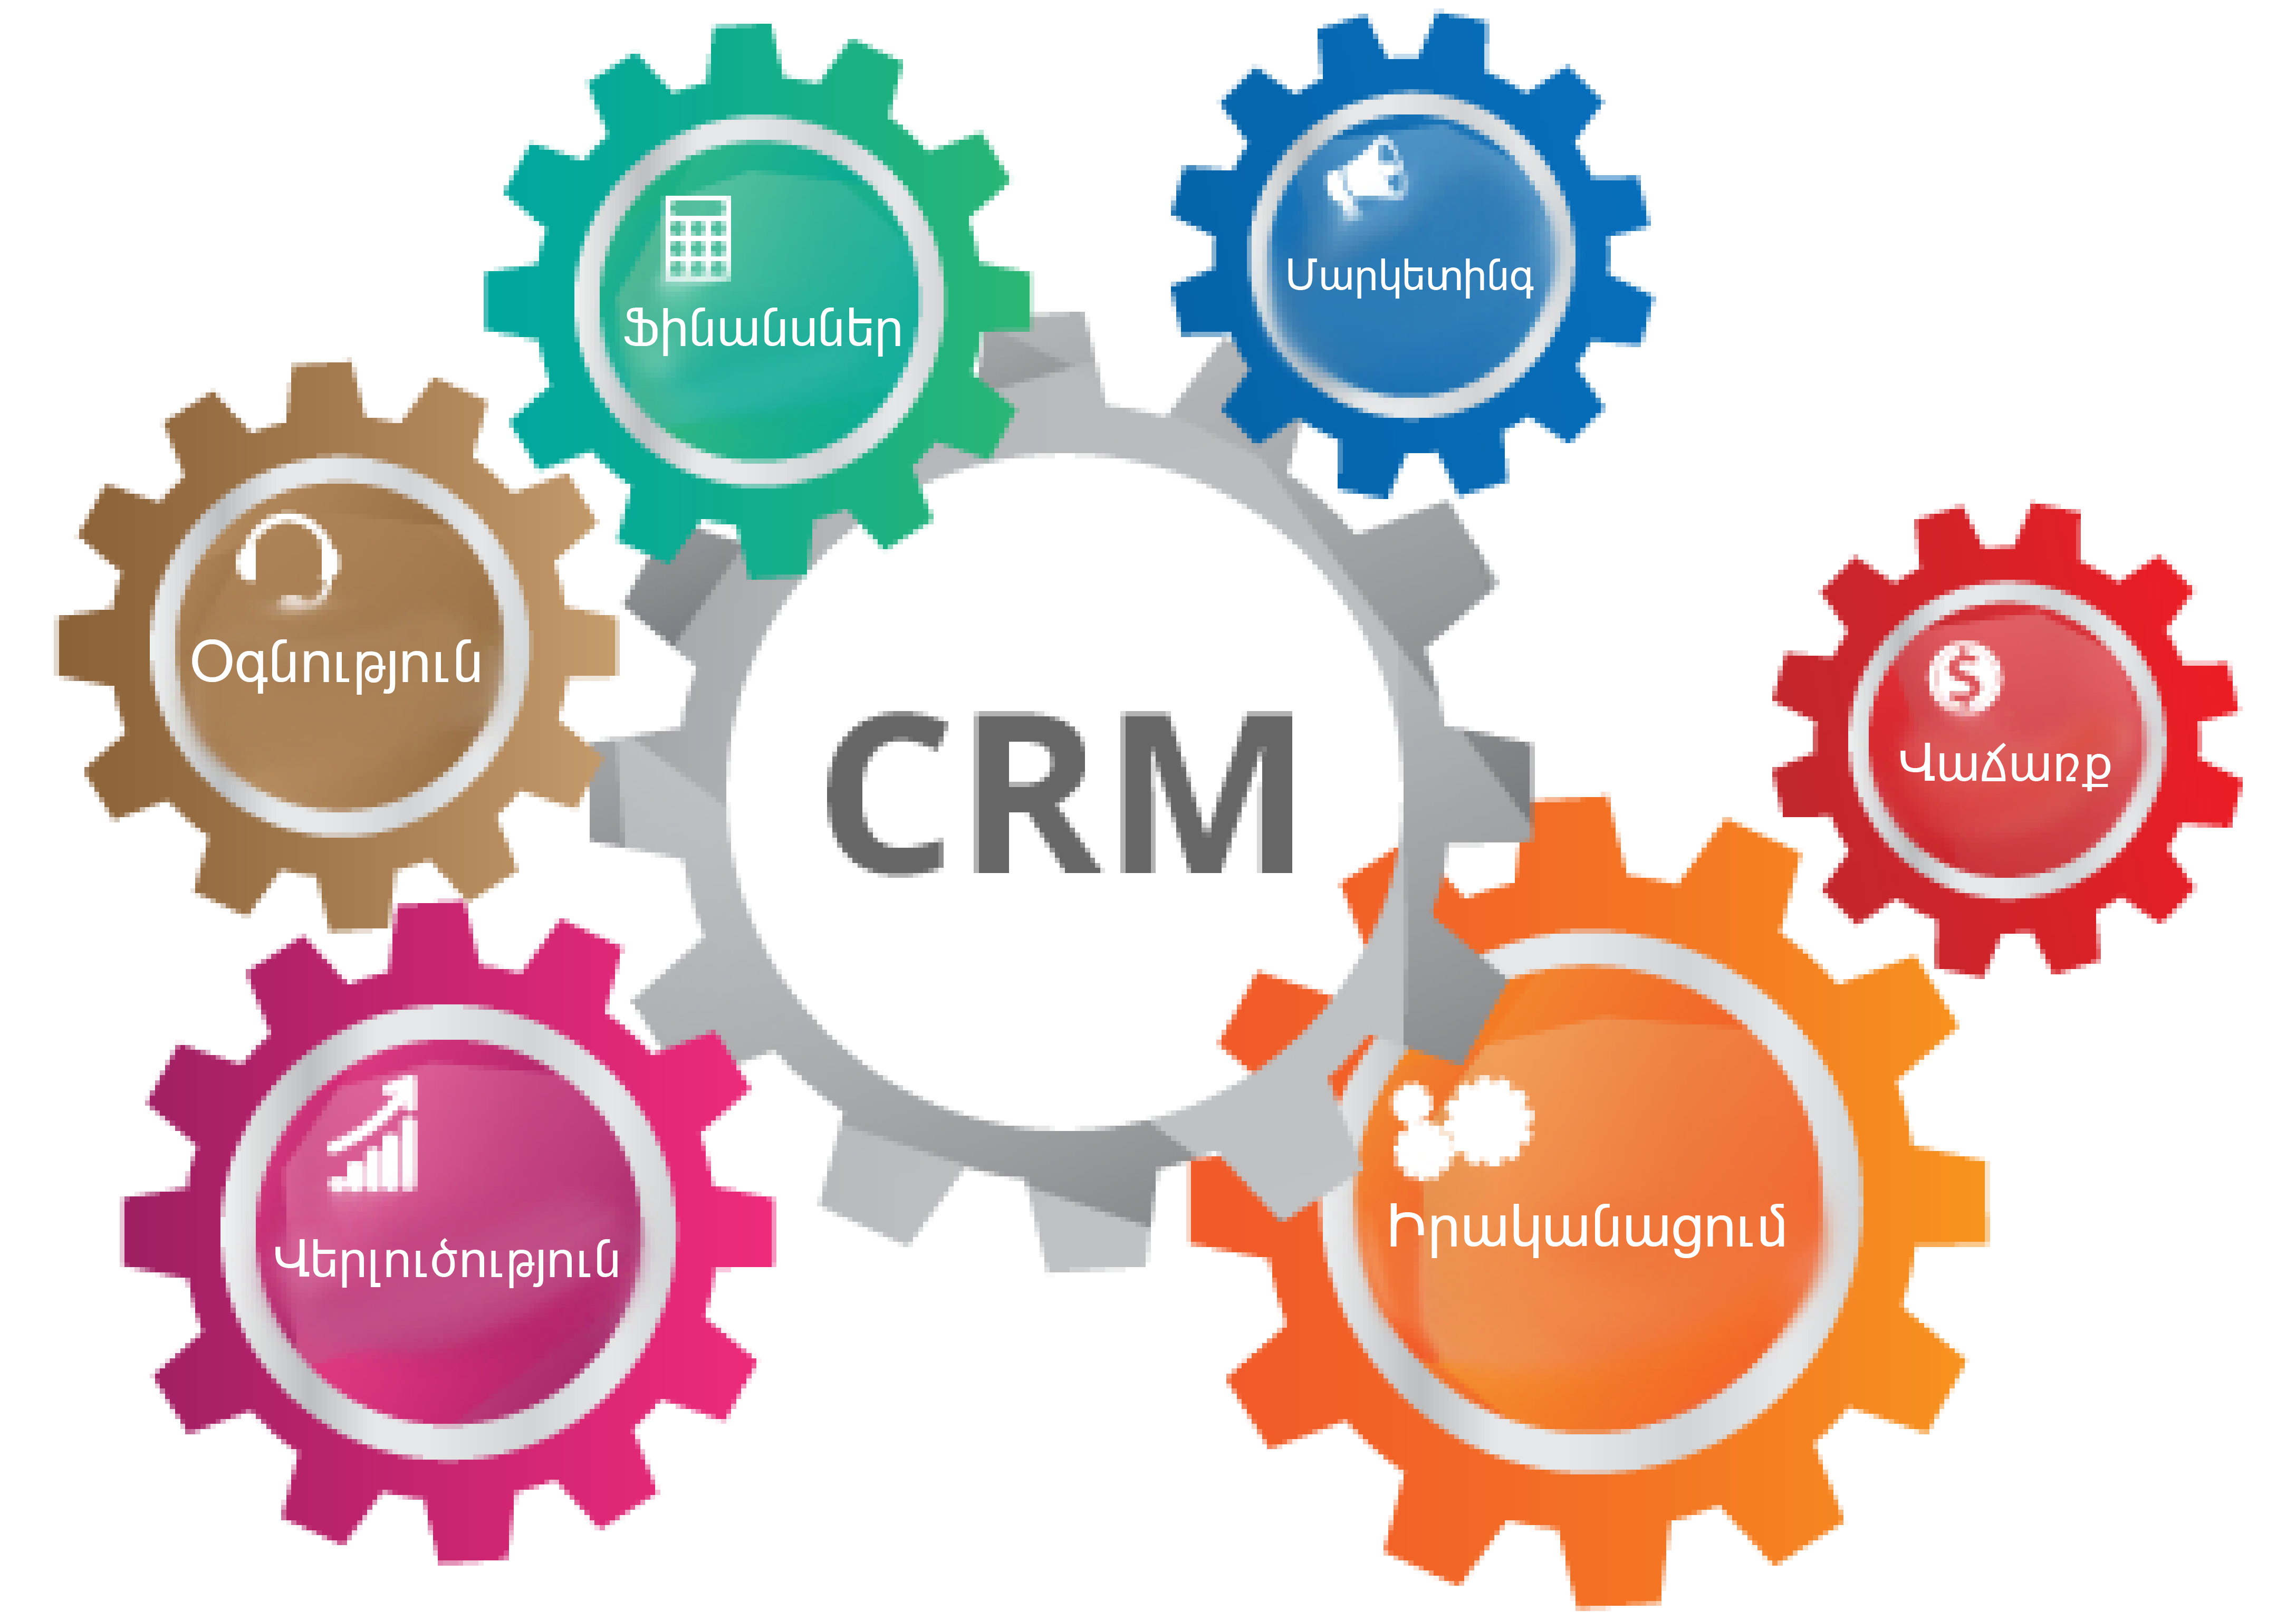 crm at retail sector Enhance the crm practices makes better to shopping at retail stores in shopping malls at bangalore city keywords: retailing, organized retailing, shopping malls, customer relationship management 1.